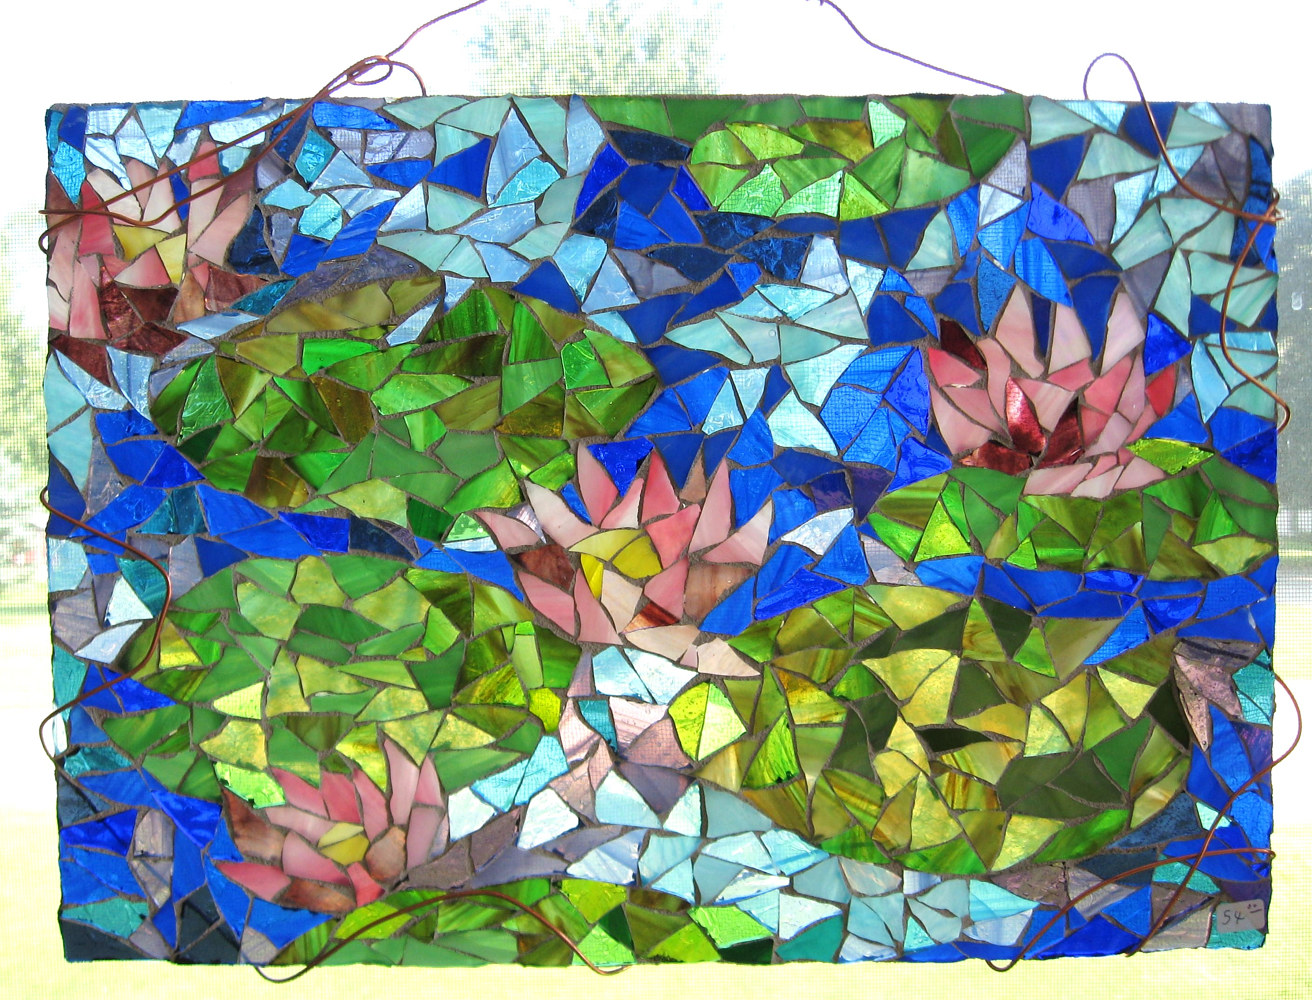 Water Lilies by Karen Spears